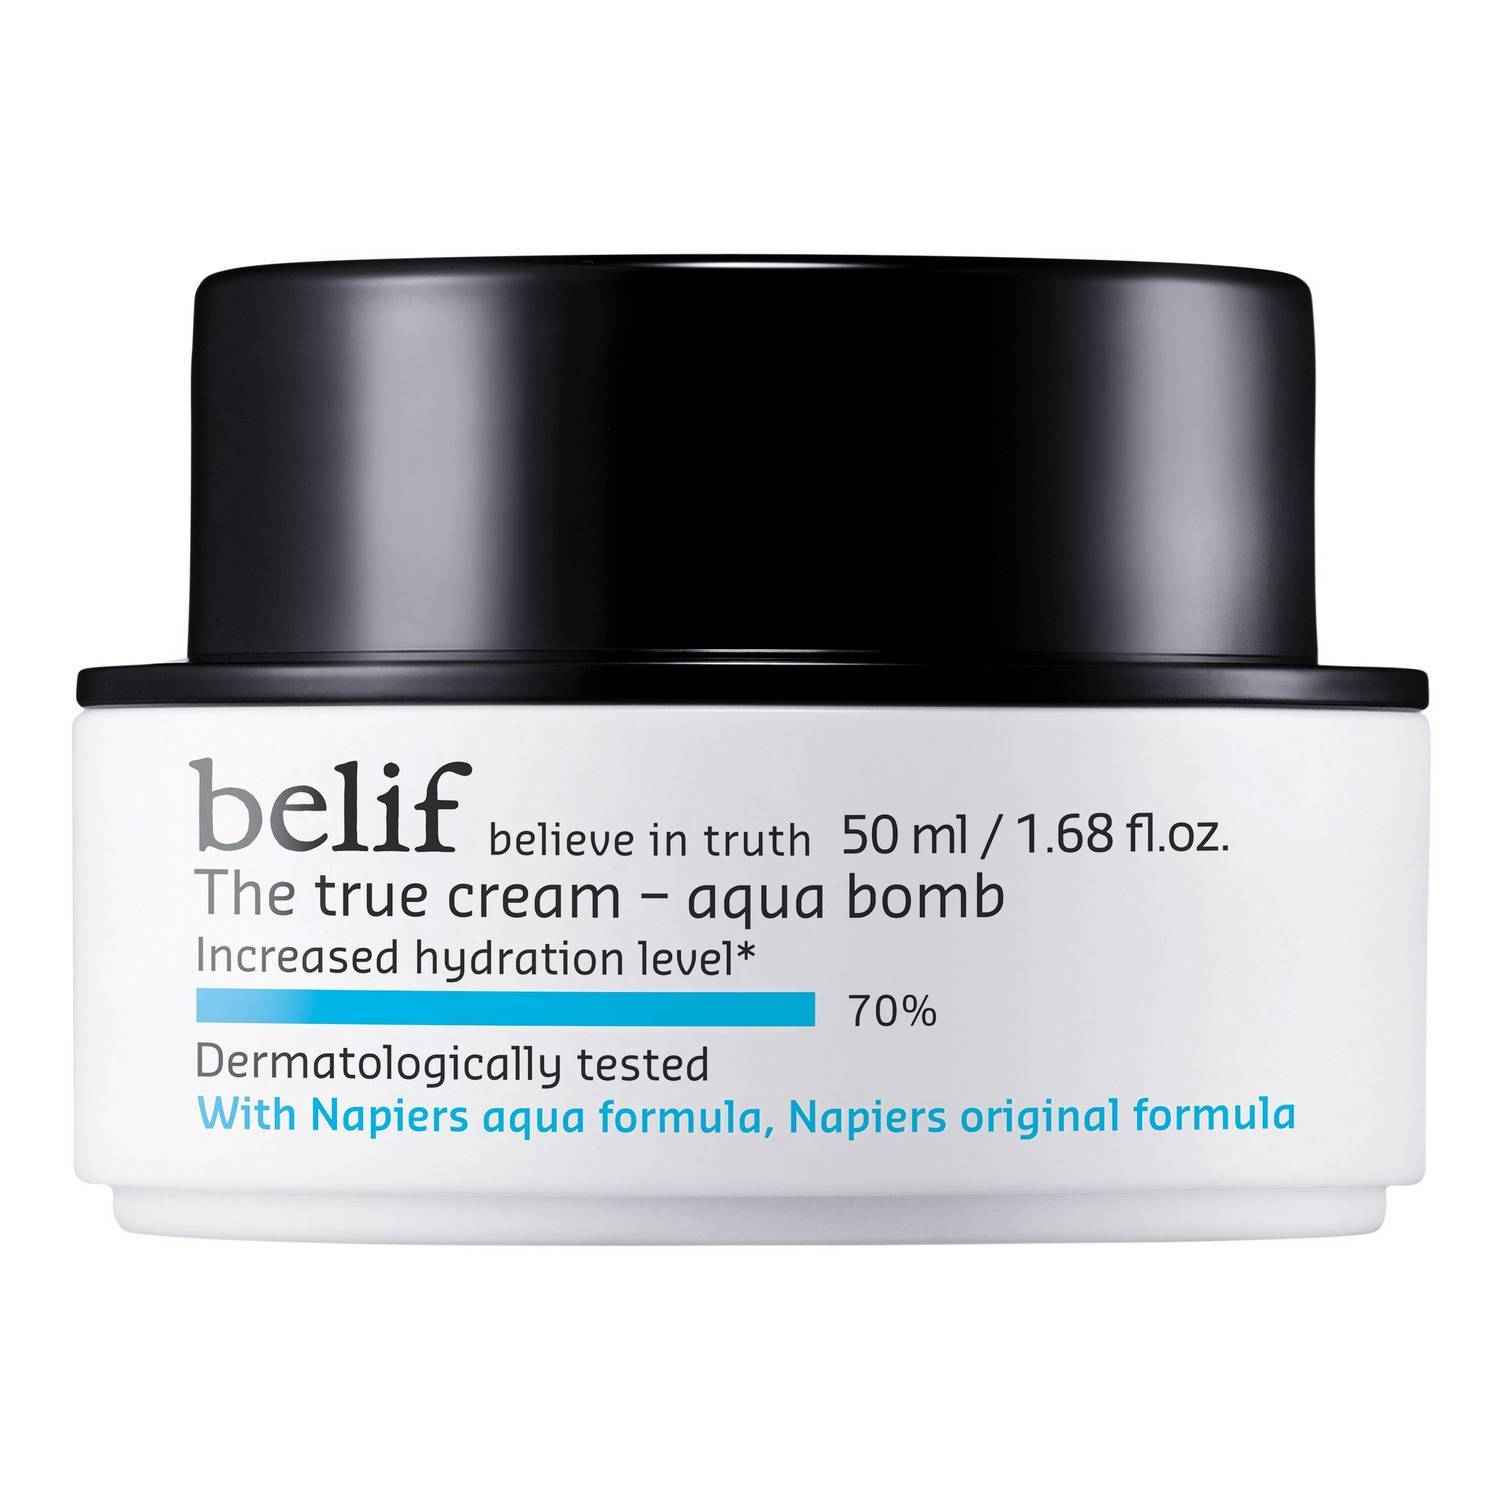 Gel crema rostro The True Cream Aqua Bomb de Bellif